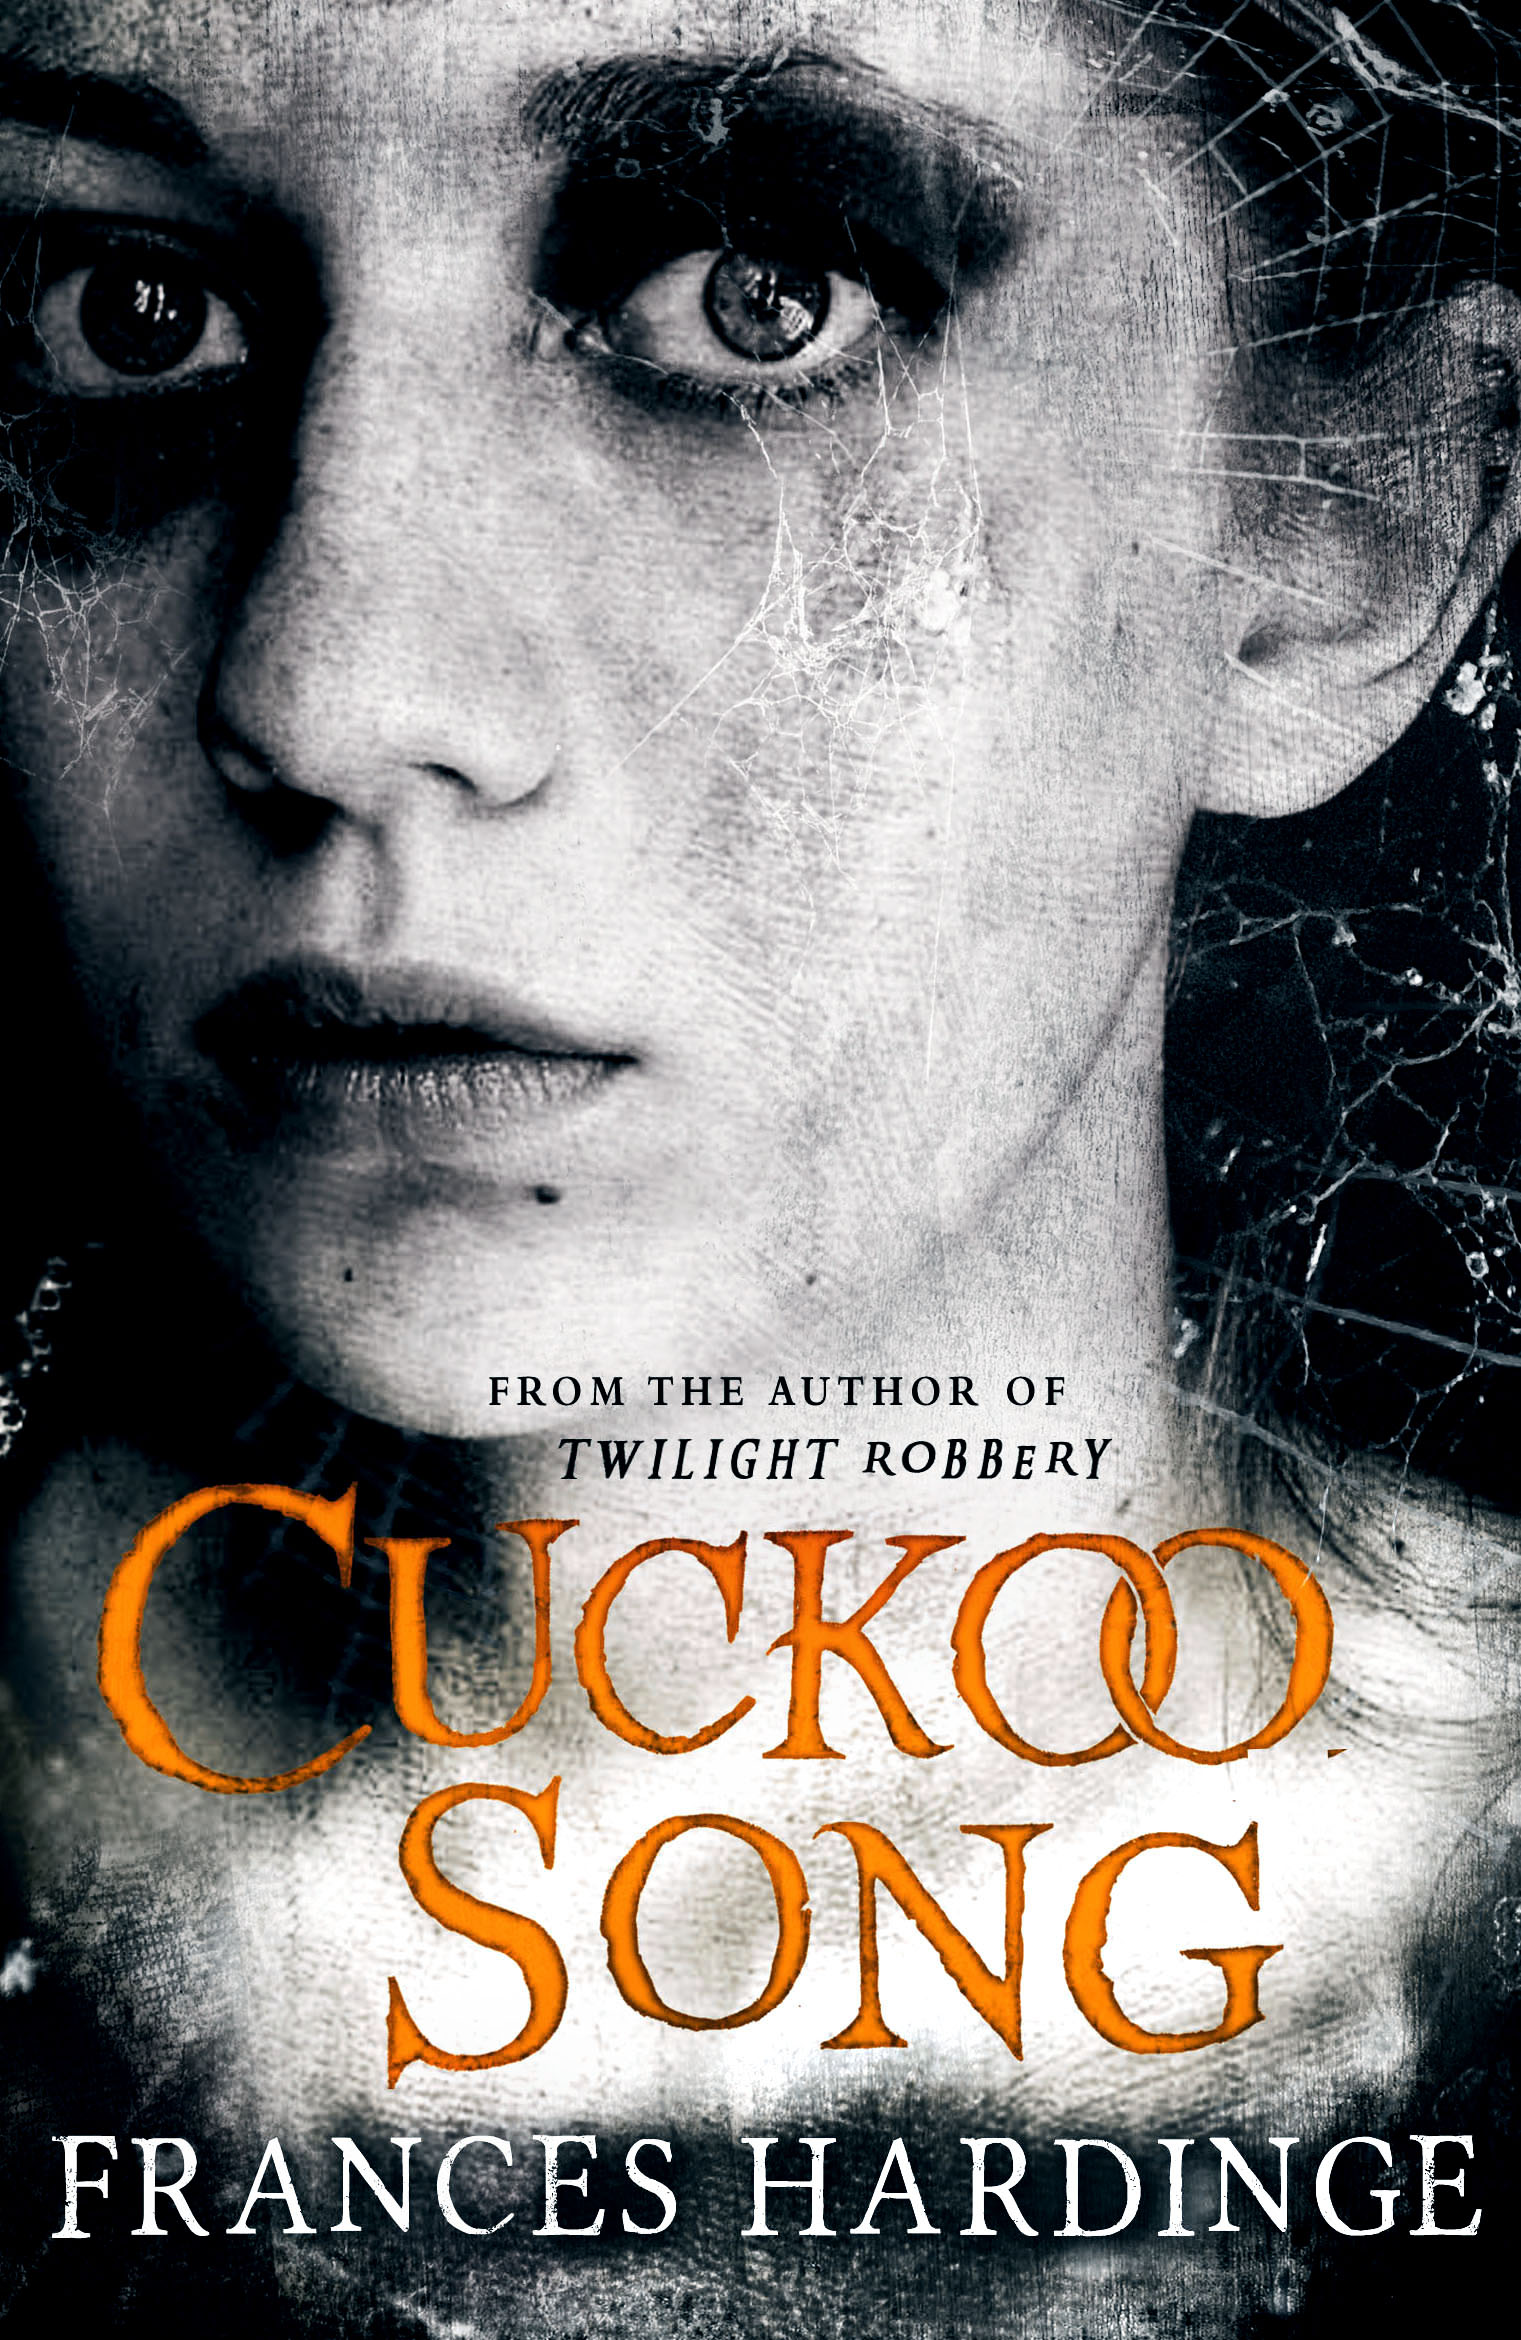 CuckooSong-cover-art